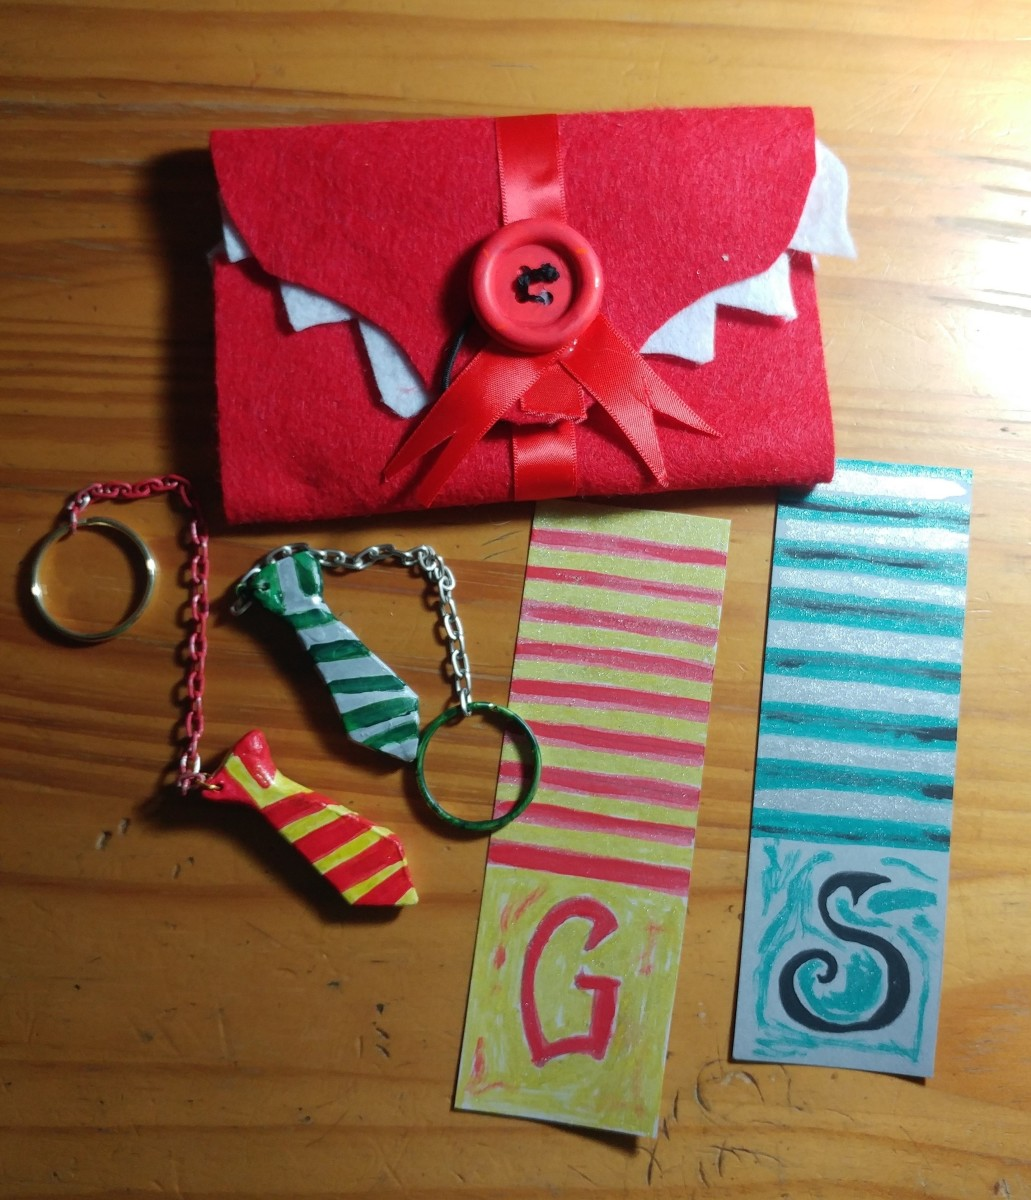 3 Fun Harry Potter Crafts: A Keychain, a Bookmark, and a Howler